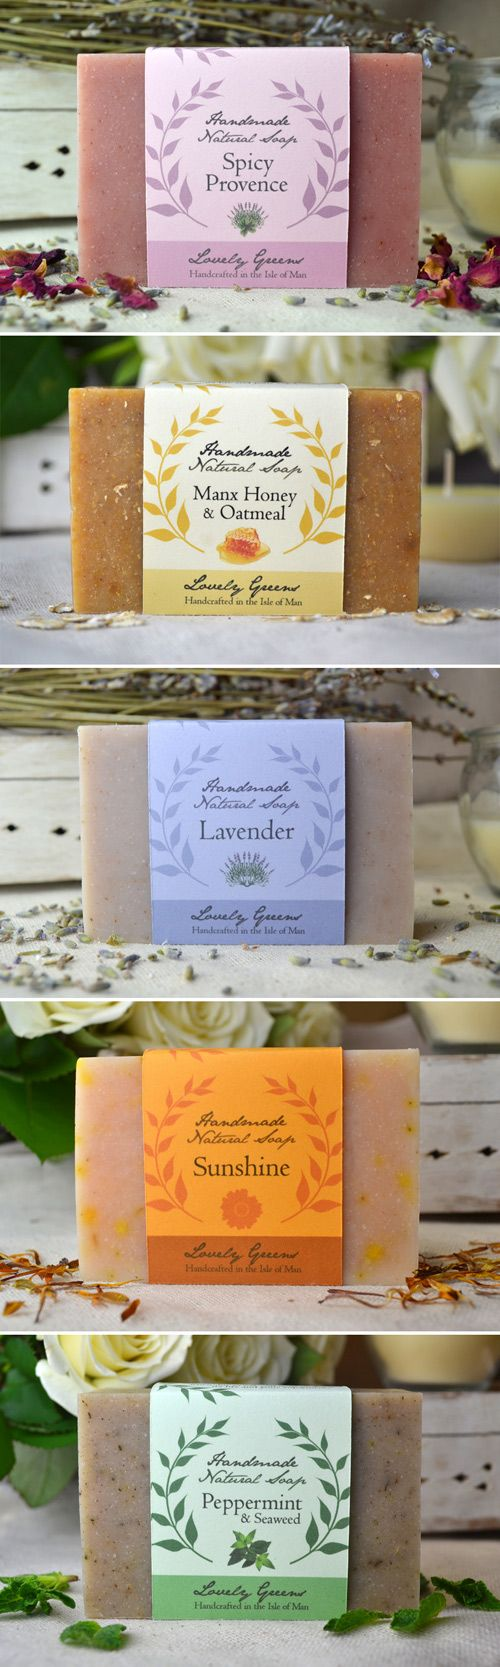 Handmade soap by Lovely Greens  Garden Collection - Island Collection